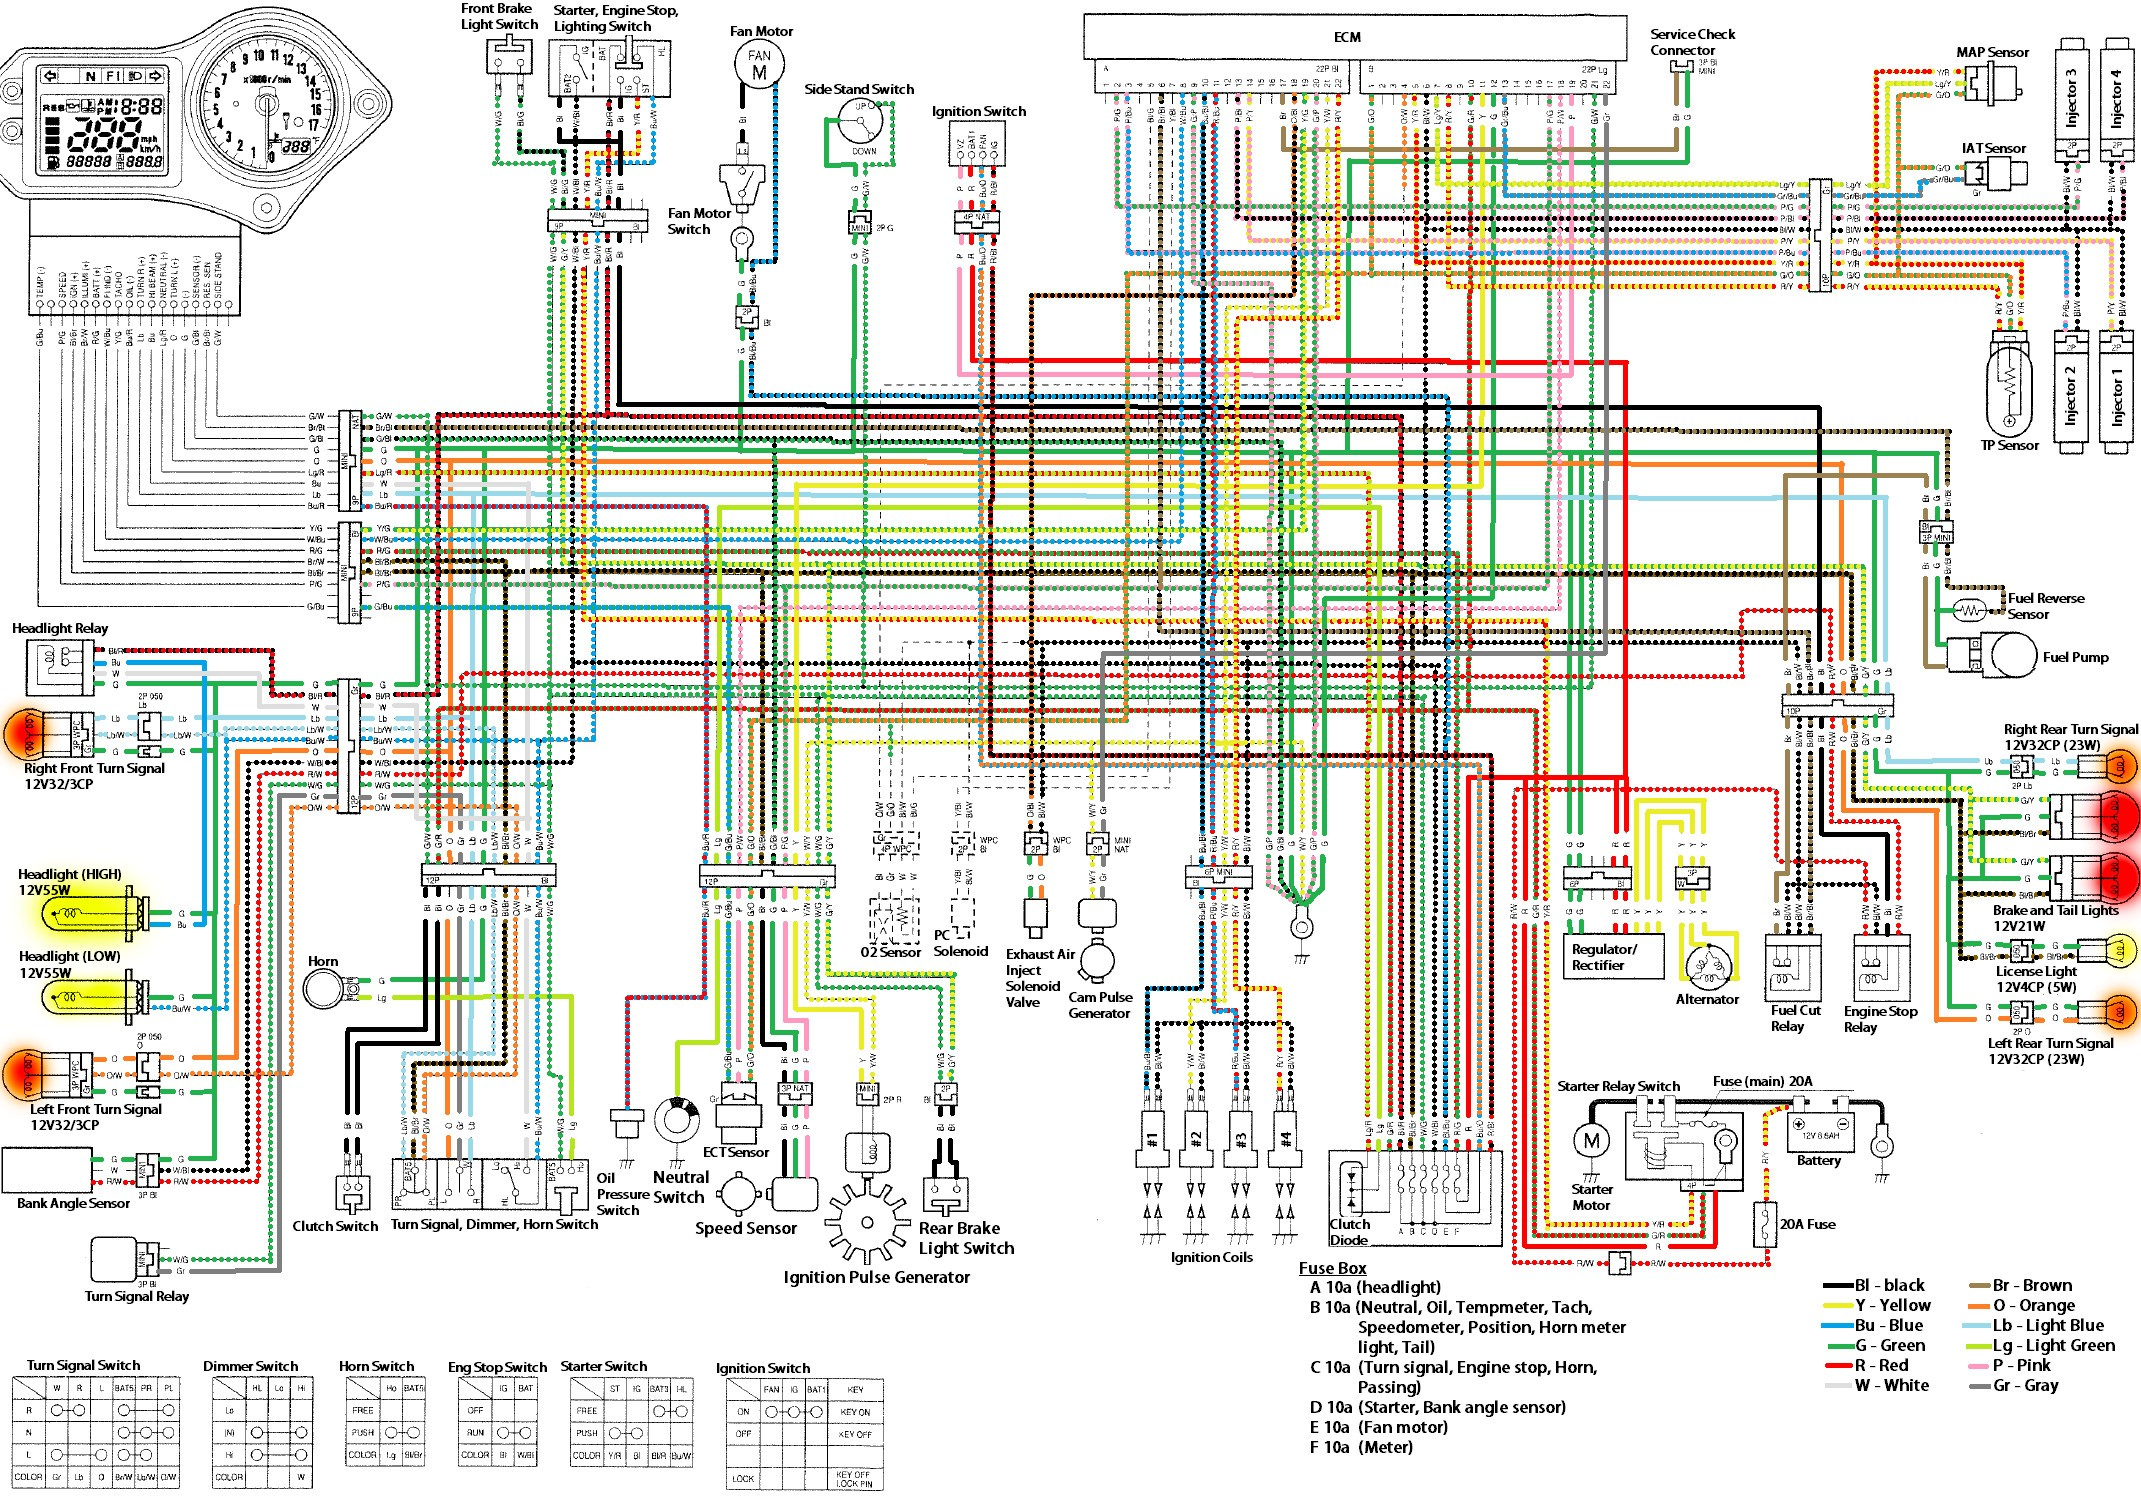 DIAGRAM] Cbr 1000rr Wiring Diagram FULL Version HD Quality Wiring Diagram -  PA300WIRINGDIAGRAM.PLOEUCSURLIE.FRploeucsurlie.fr